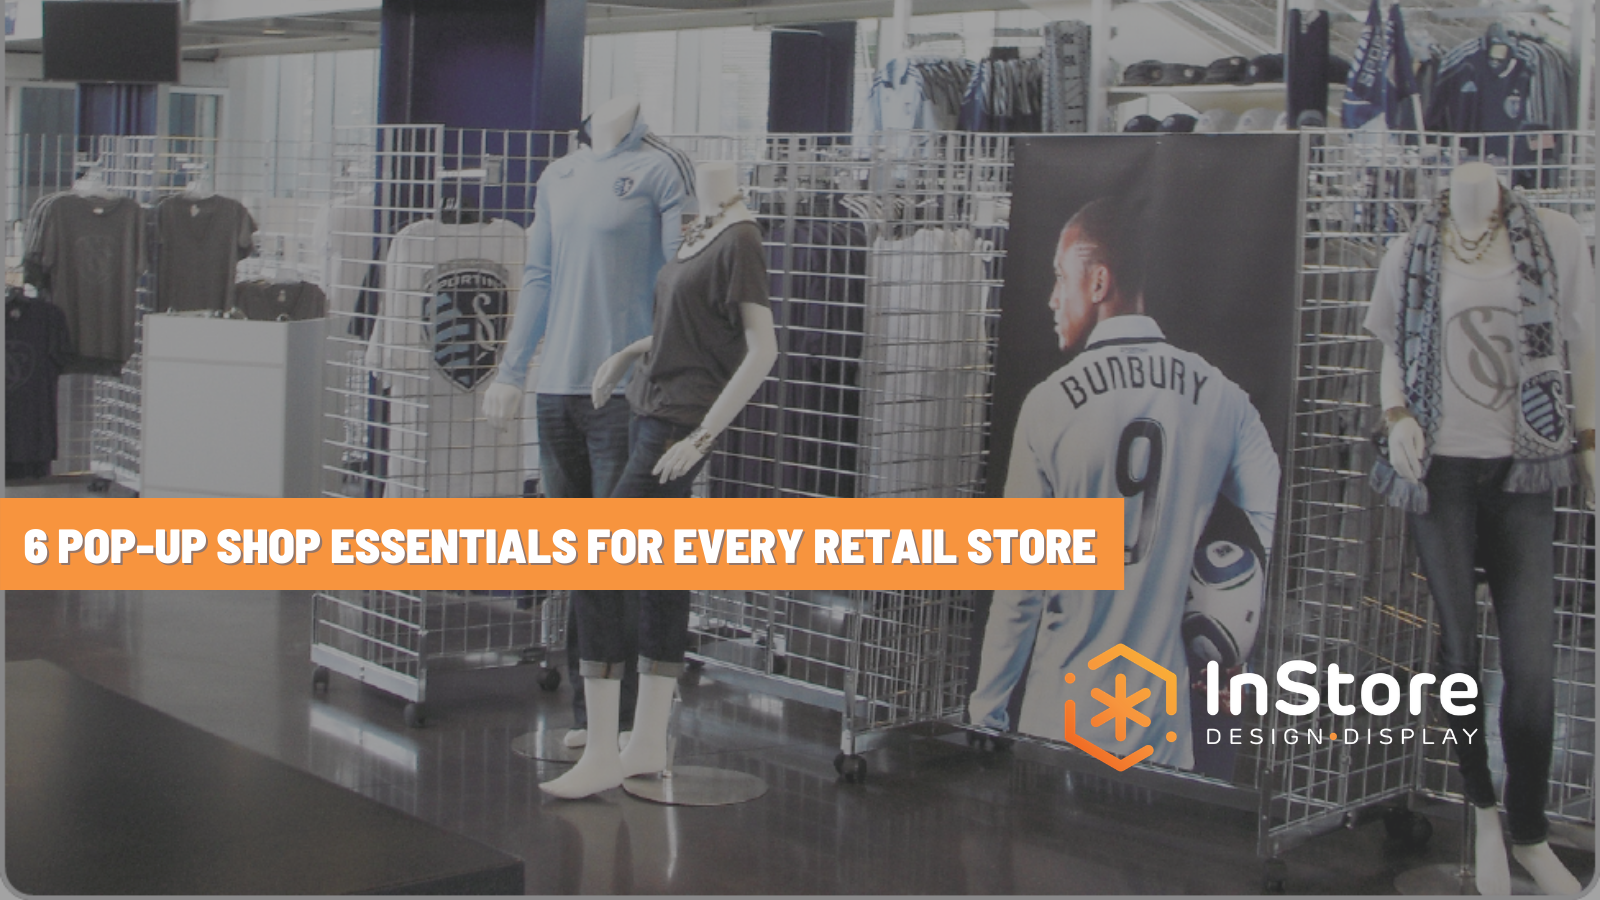 6 Pop-Up Shop Essentials for Every Retail Store